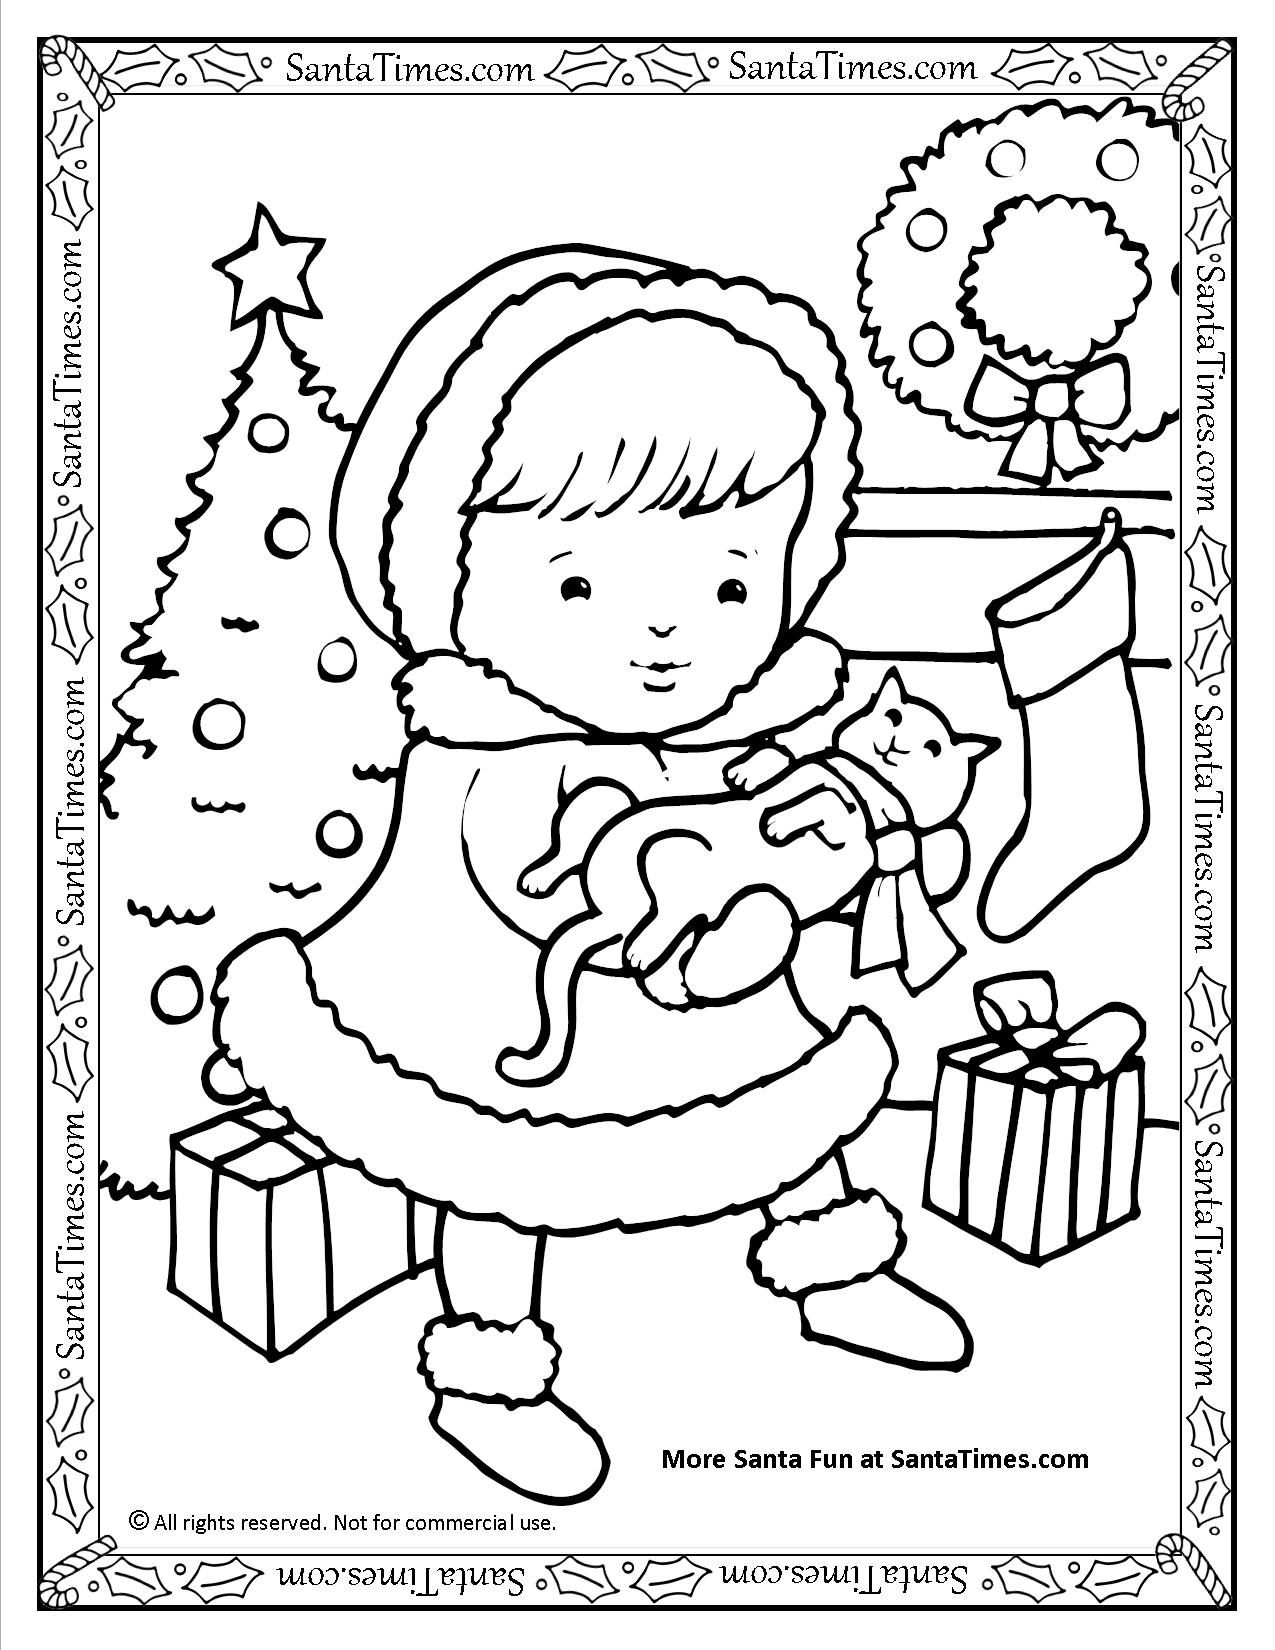 Merry Christmas Kitty Printable Coloring Page More Fun